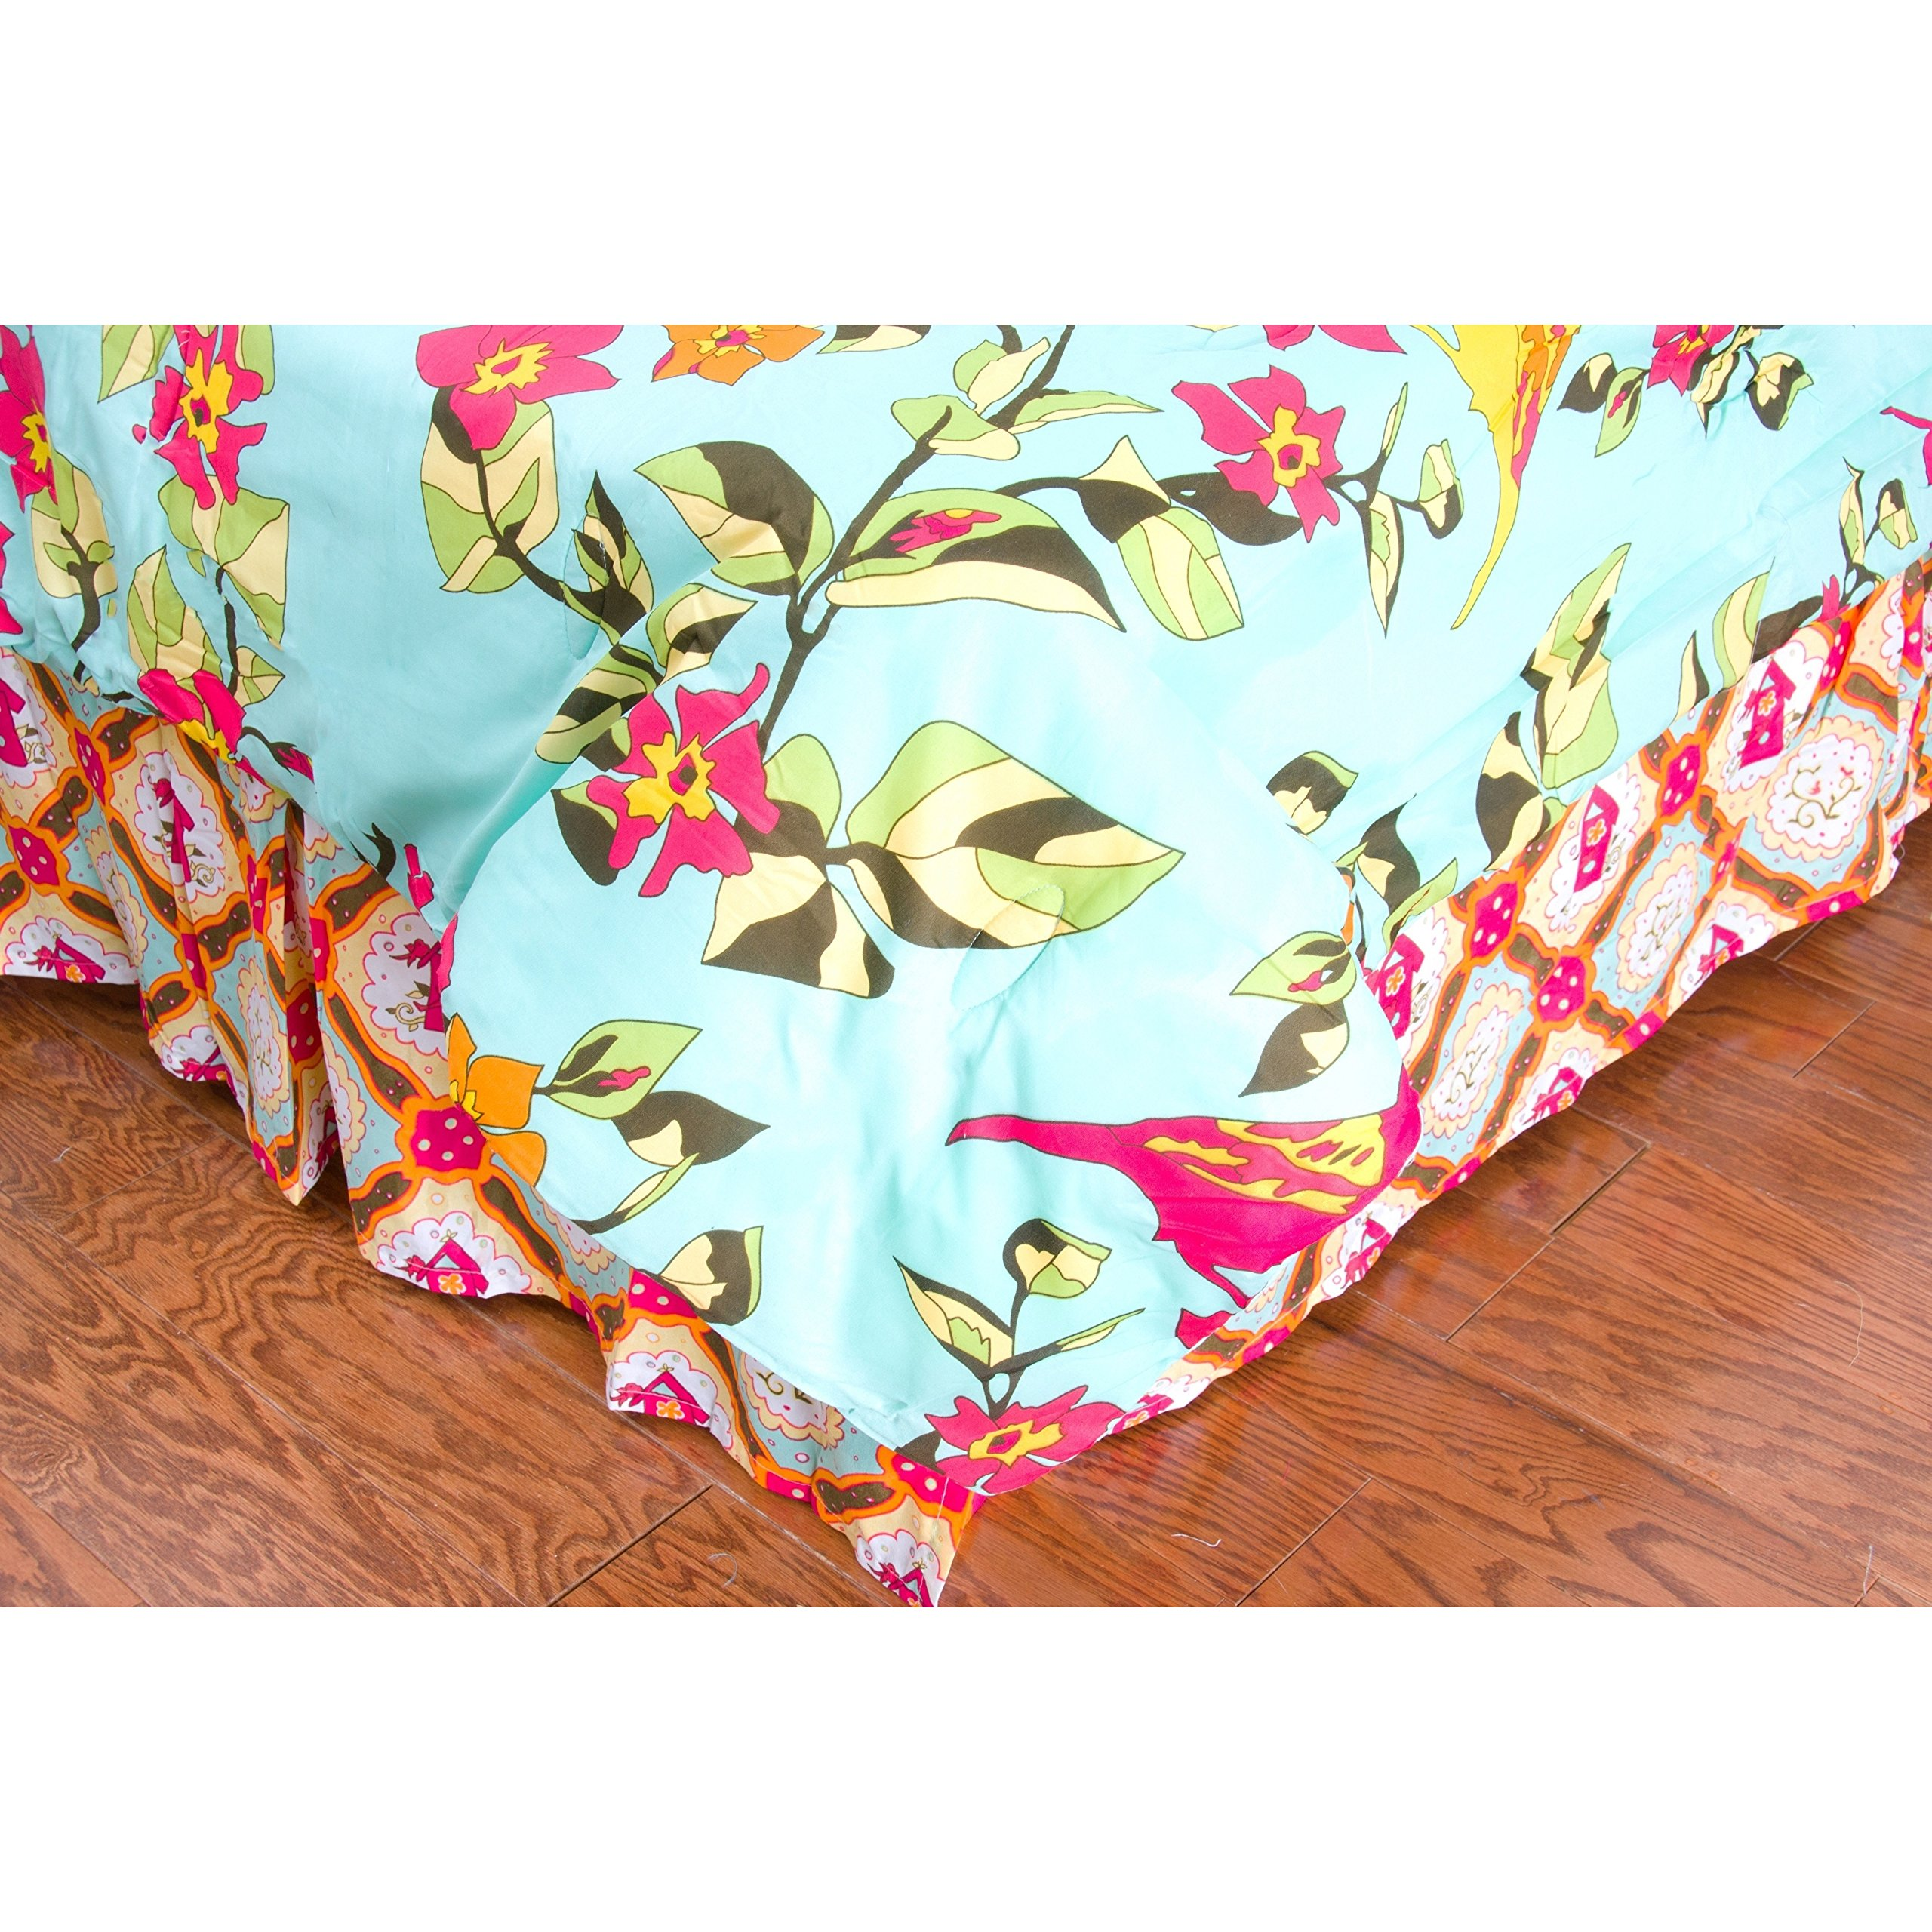 Rizzy Home Birds in Paradise Kids Bed Skirt, Twin